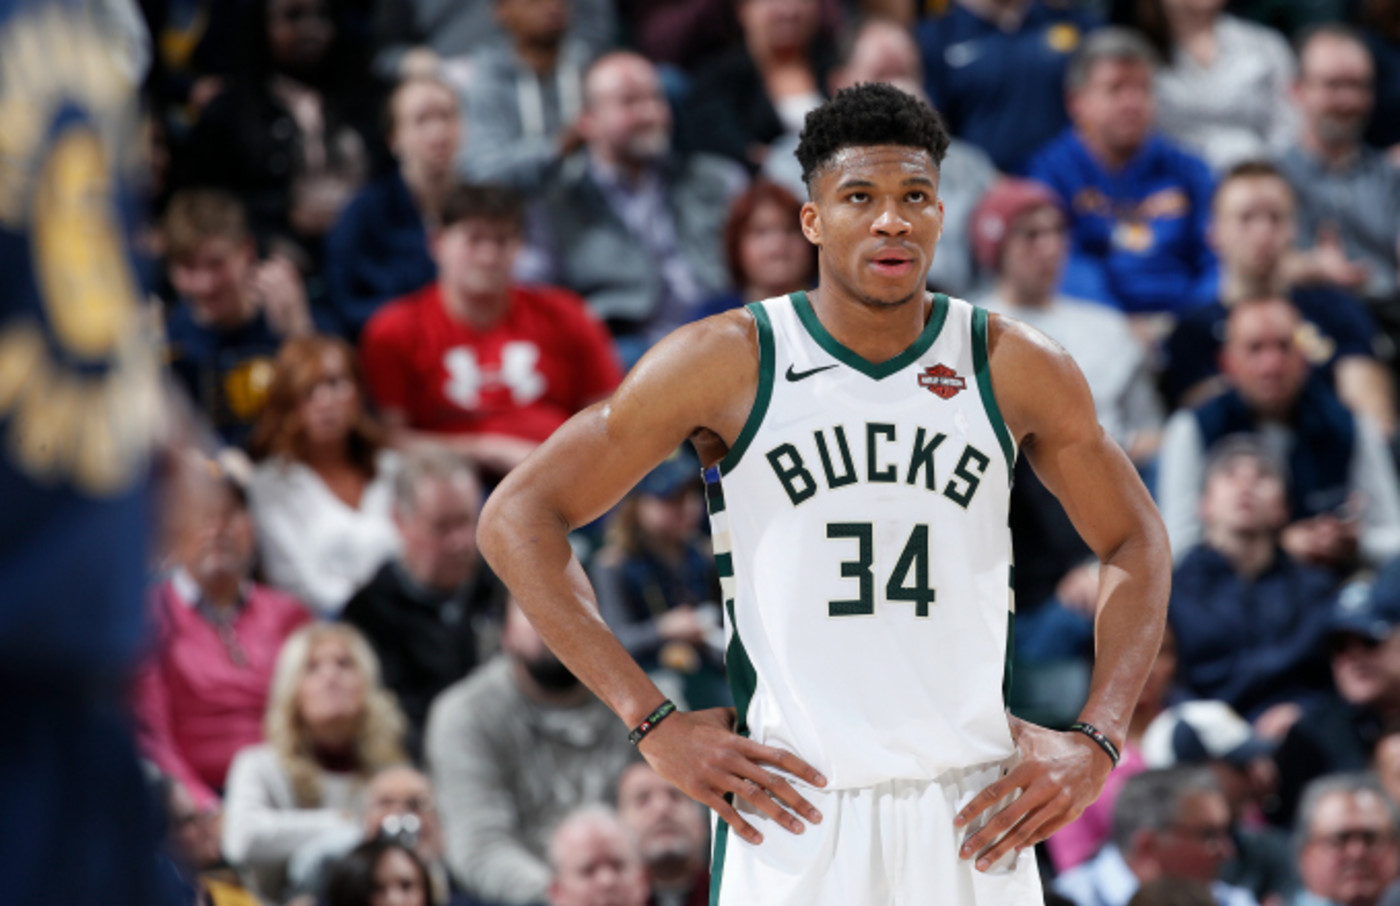 Giannis Antetokounmpo #34 of the Milwaukee Bucks looks on